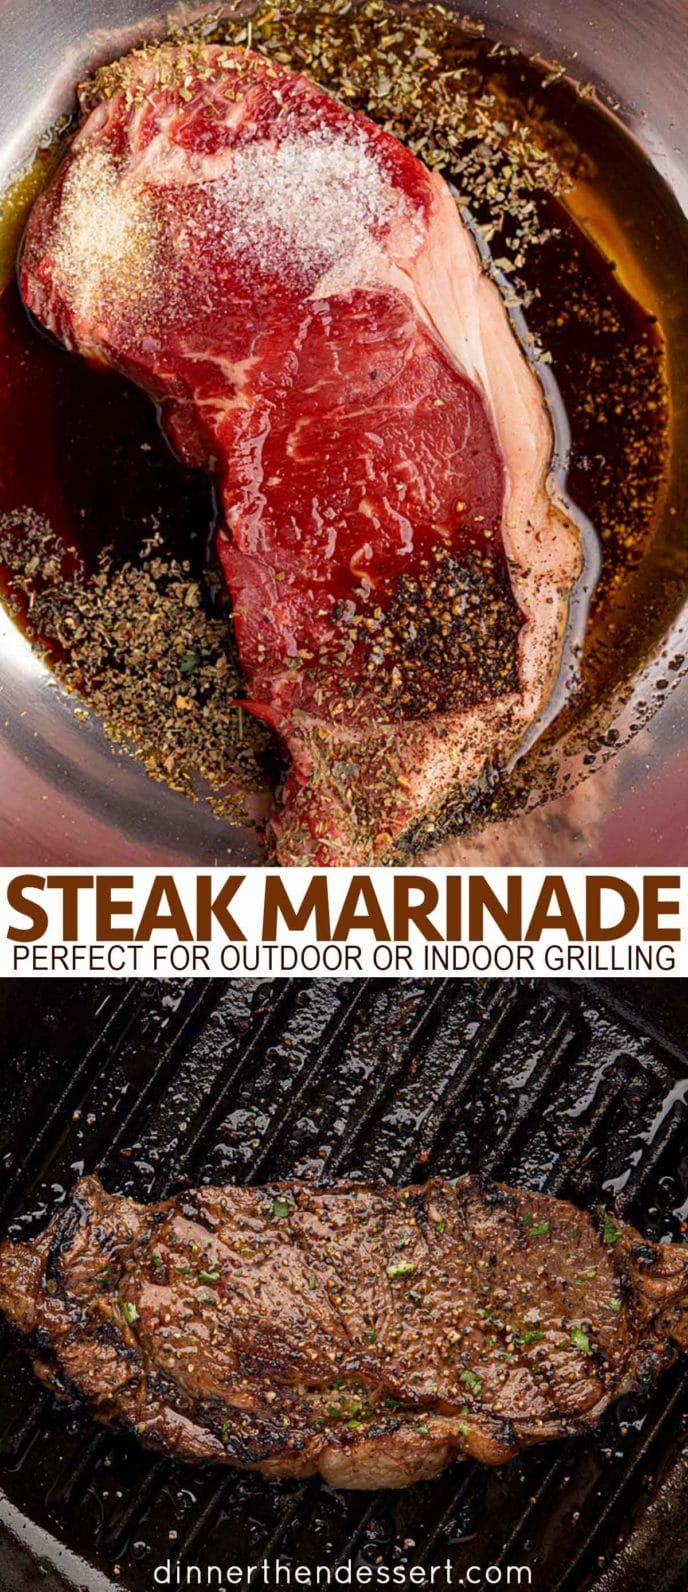 The BEST Ever Steak Marinade - Dinner, then Dessert